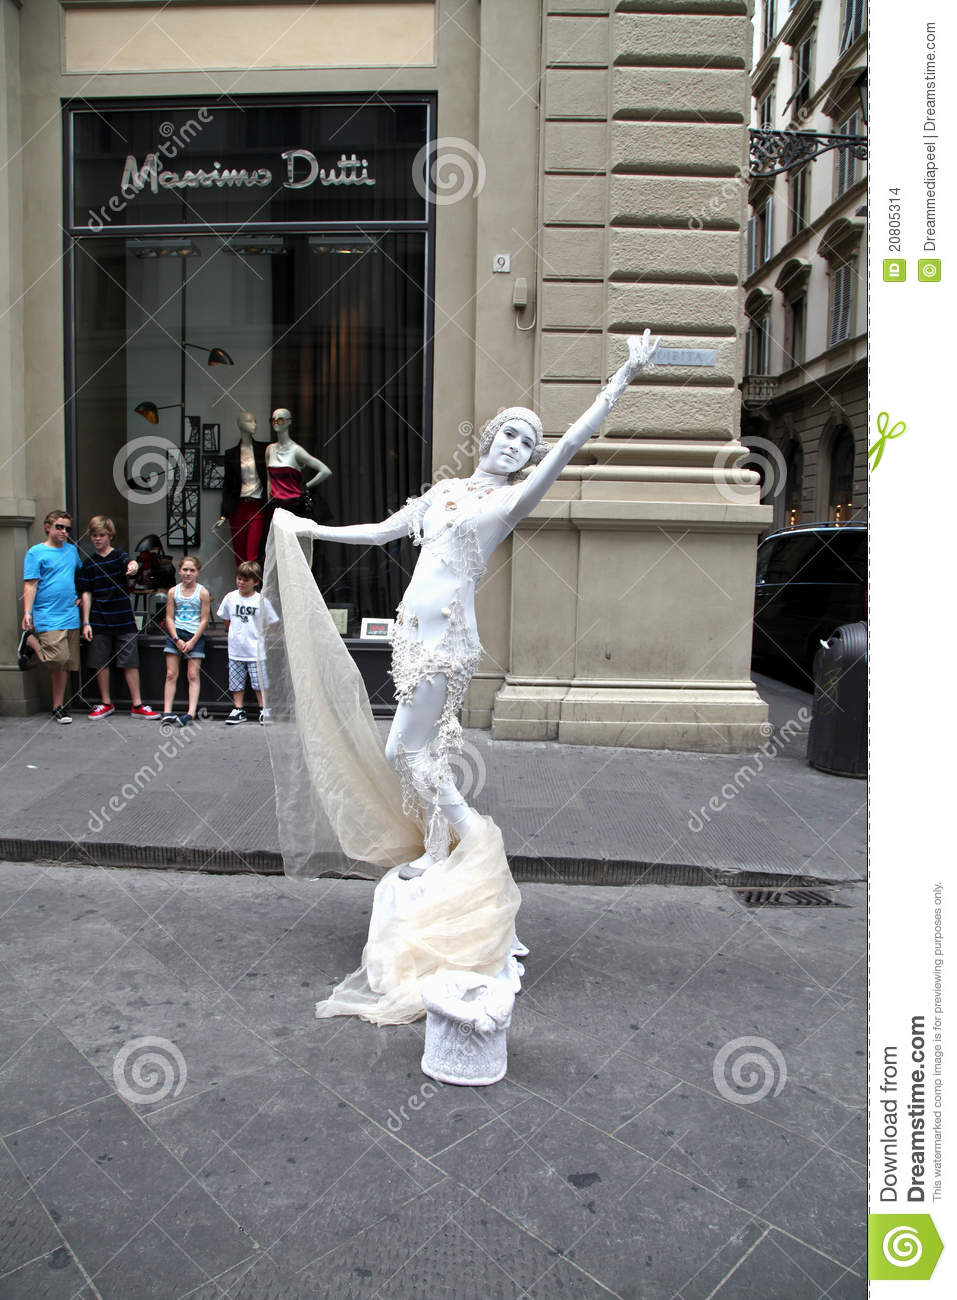 Travel Contest 2017 Human Statue Rome Italy Editorial Stock Image Image